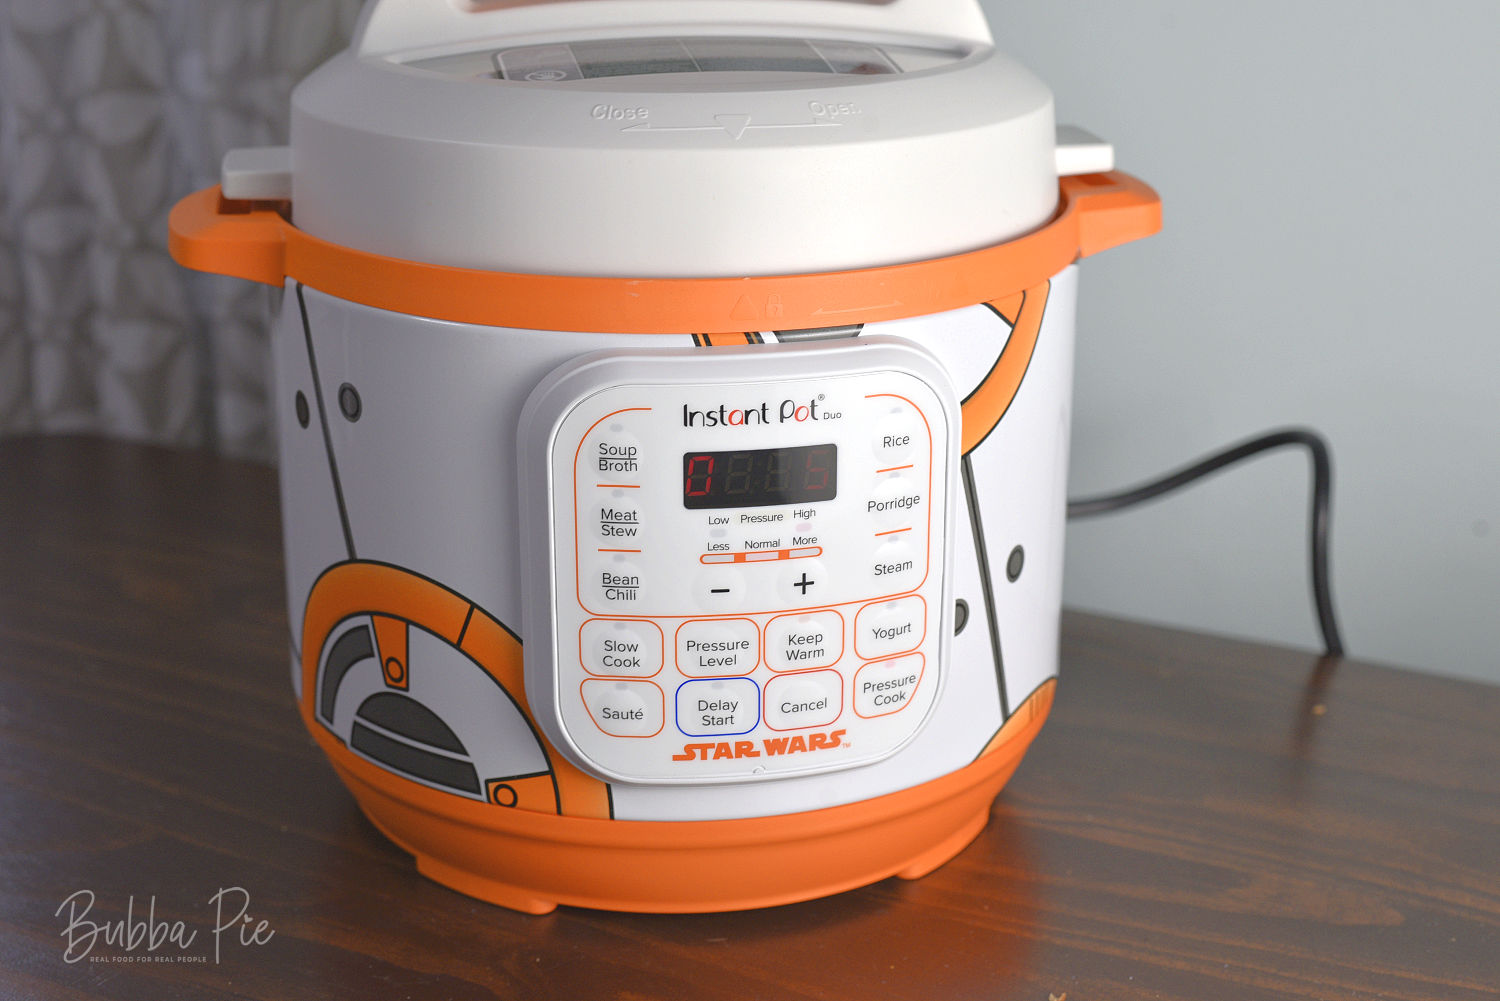 A star wars themed instant pot sitting on a table